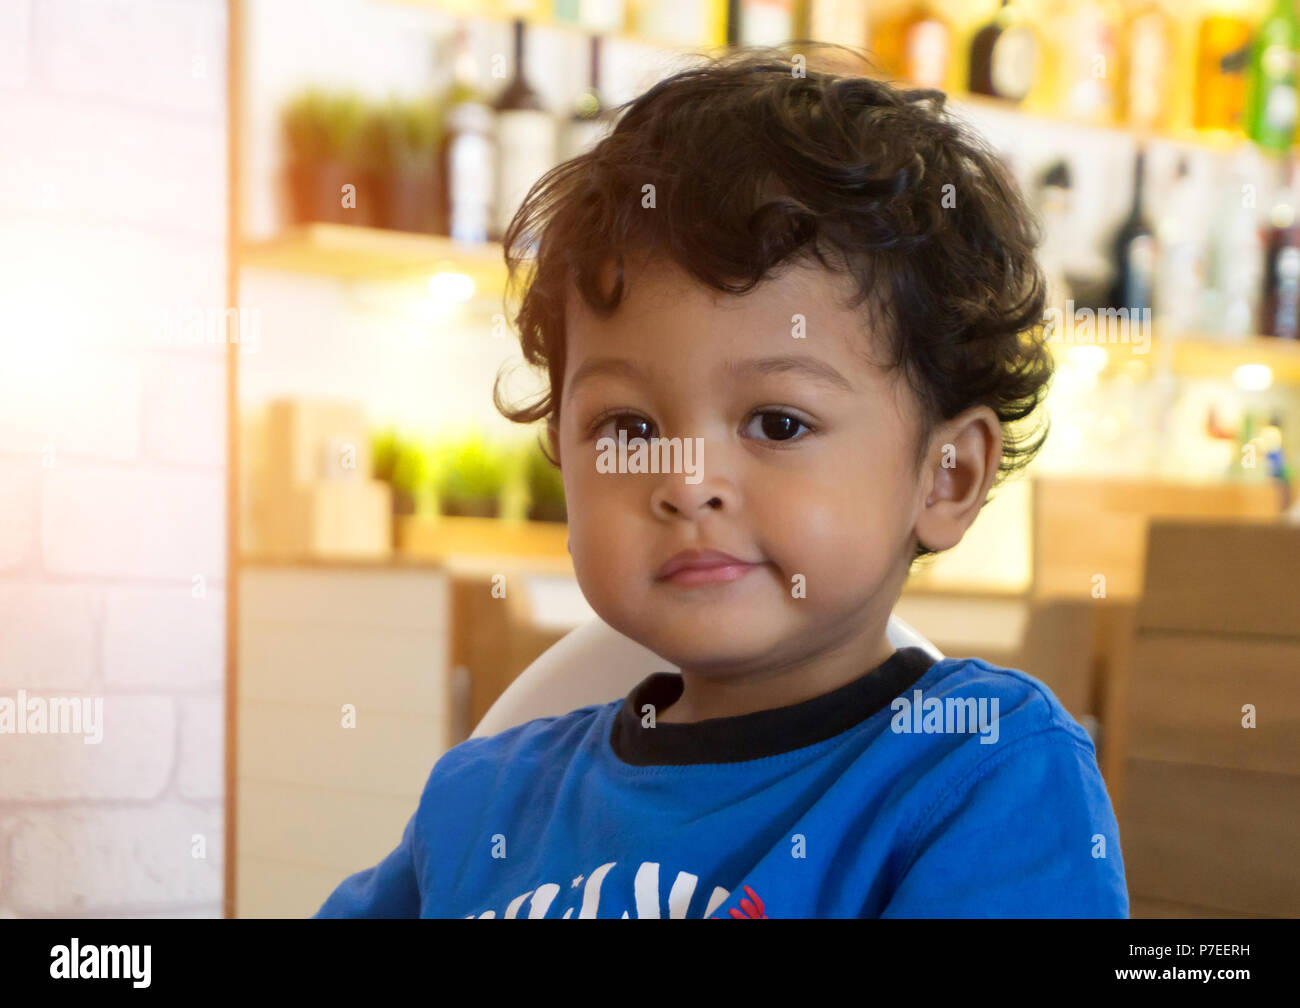 2 Kid 2 Year Old Asian Baby Boy Smile And Happiness Emotion Face Or